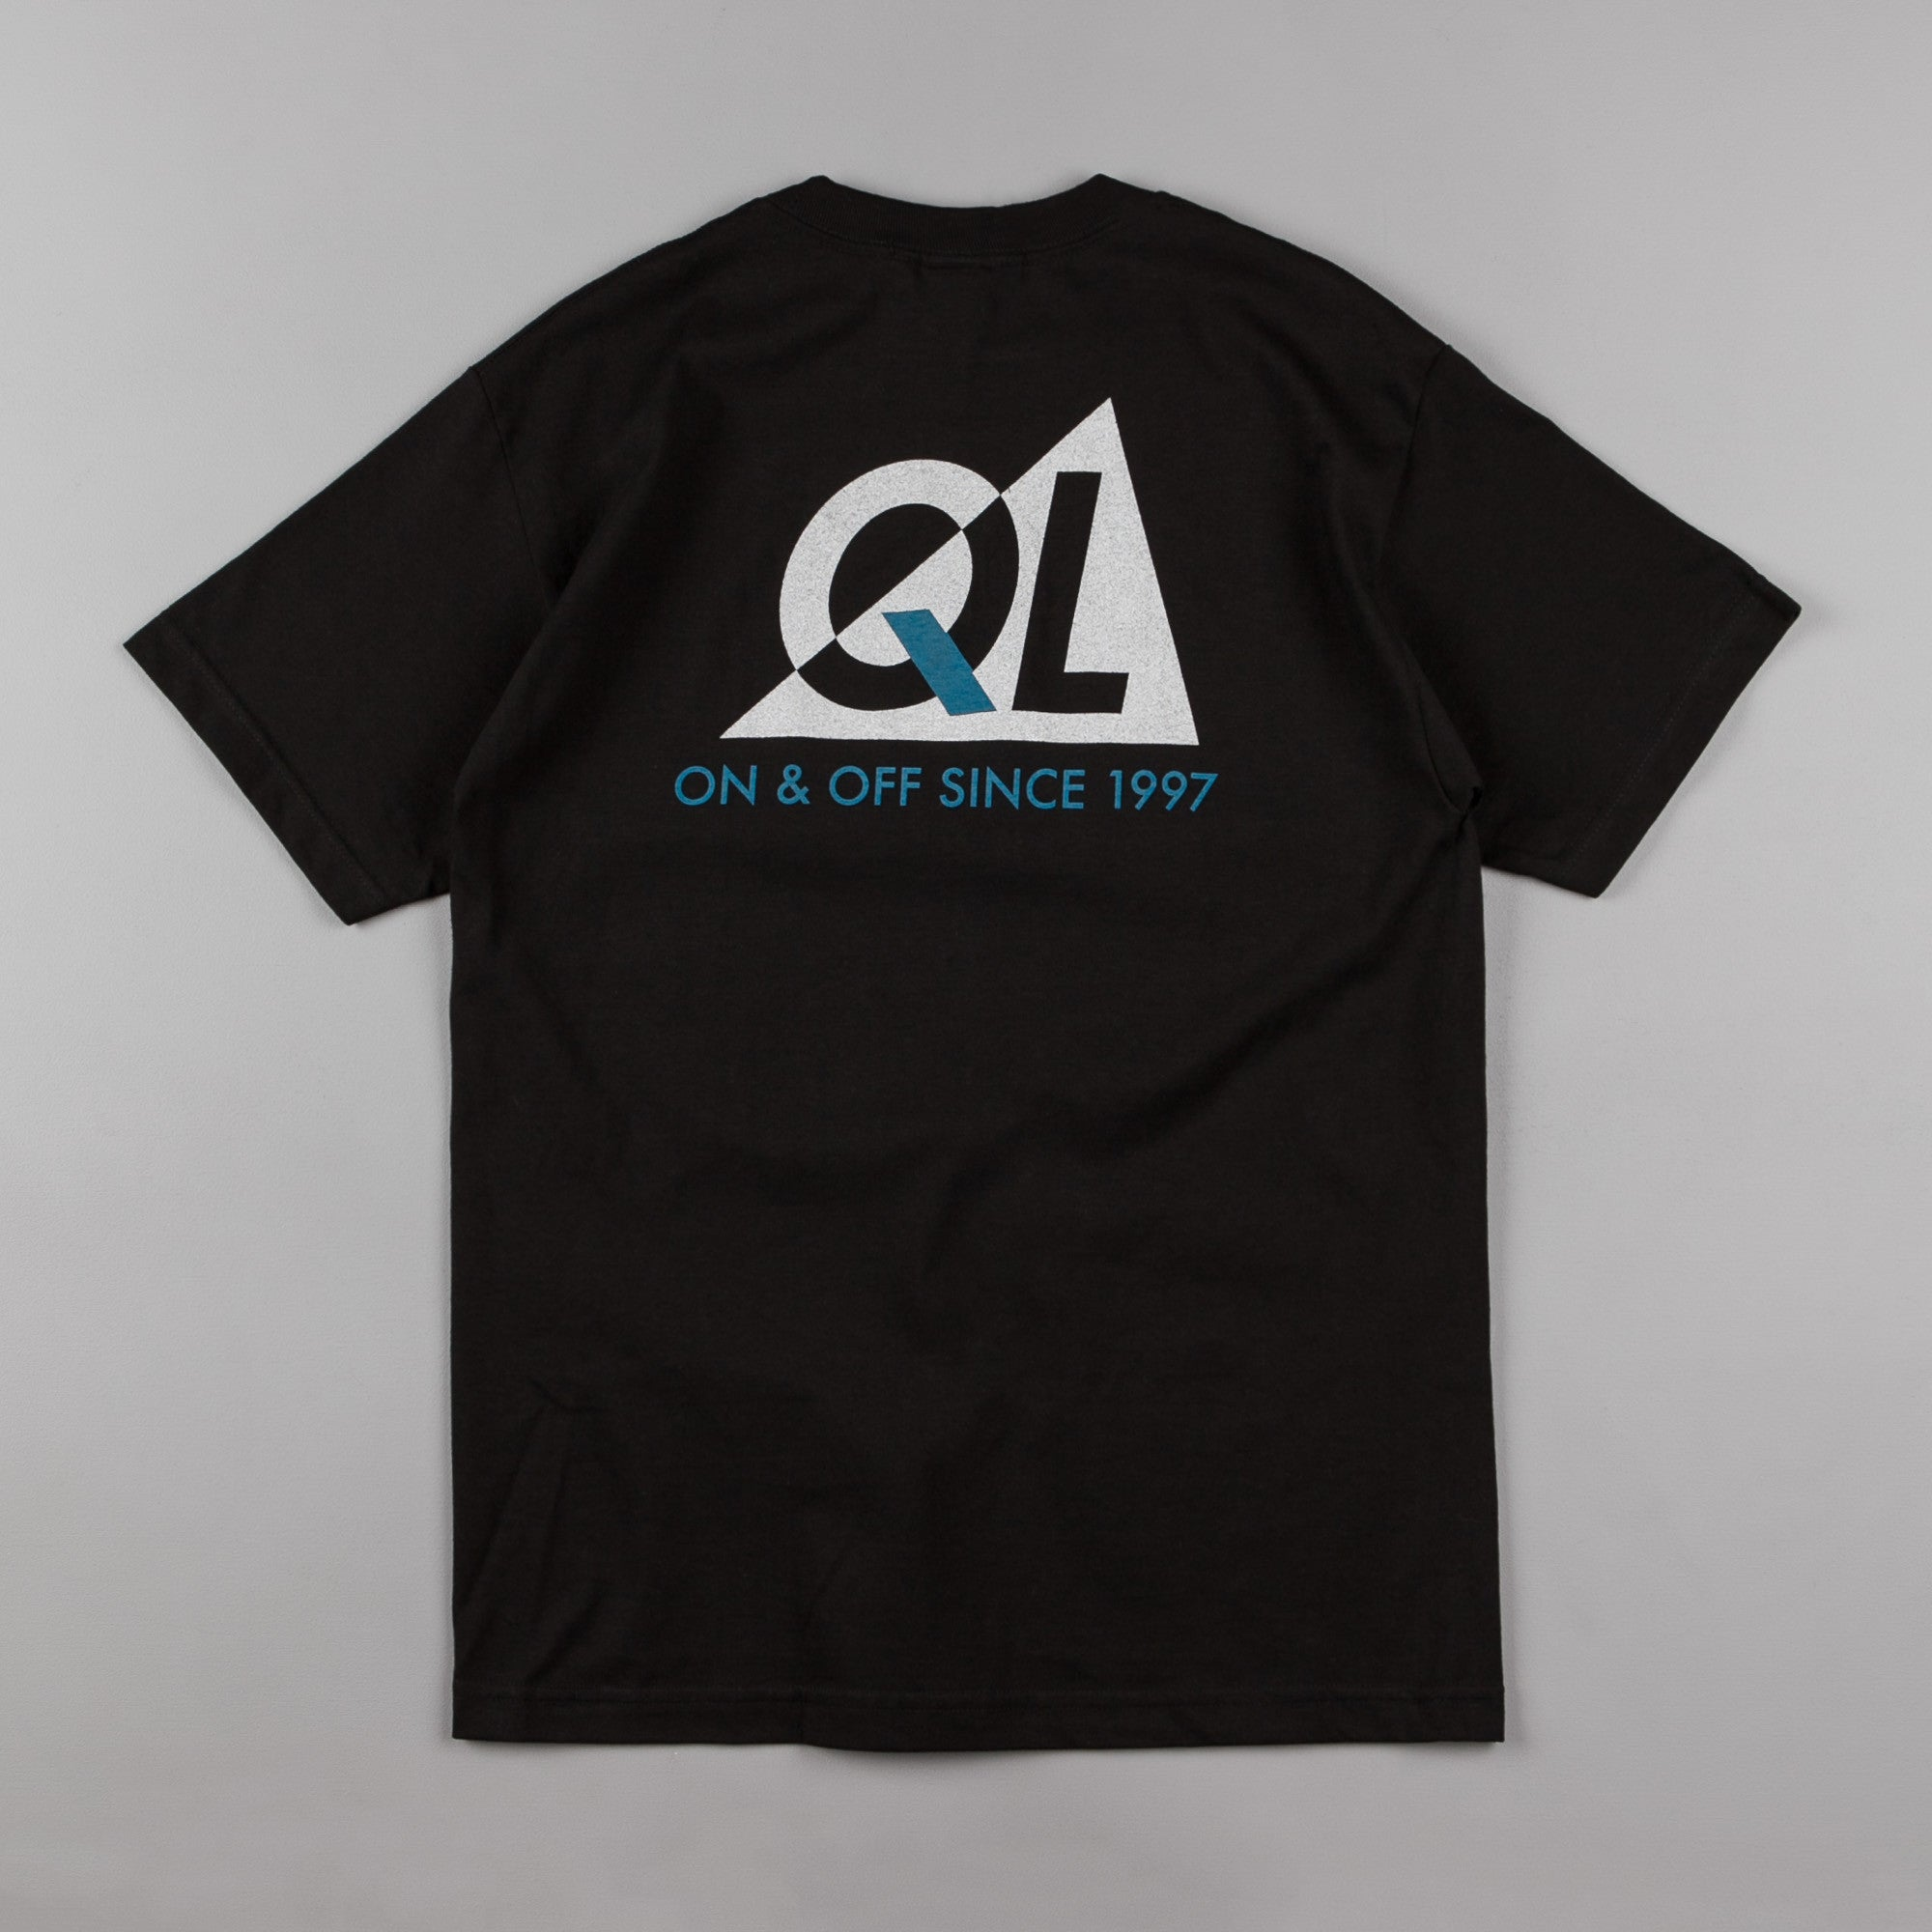 The Quiet Life Reflective T-Shirt - Black